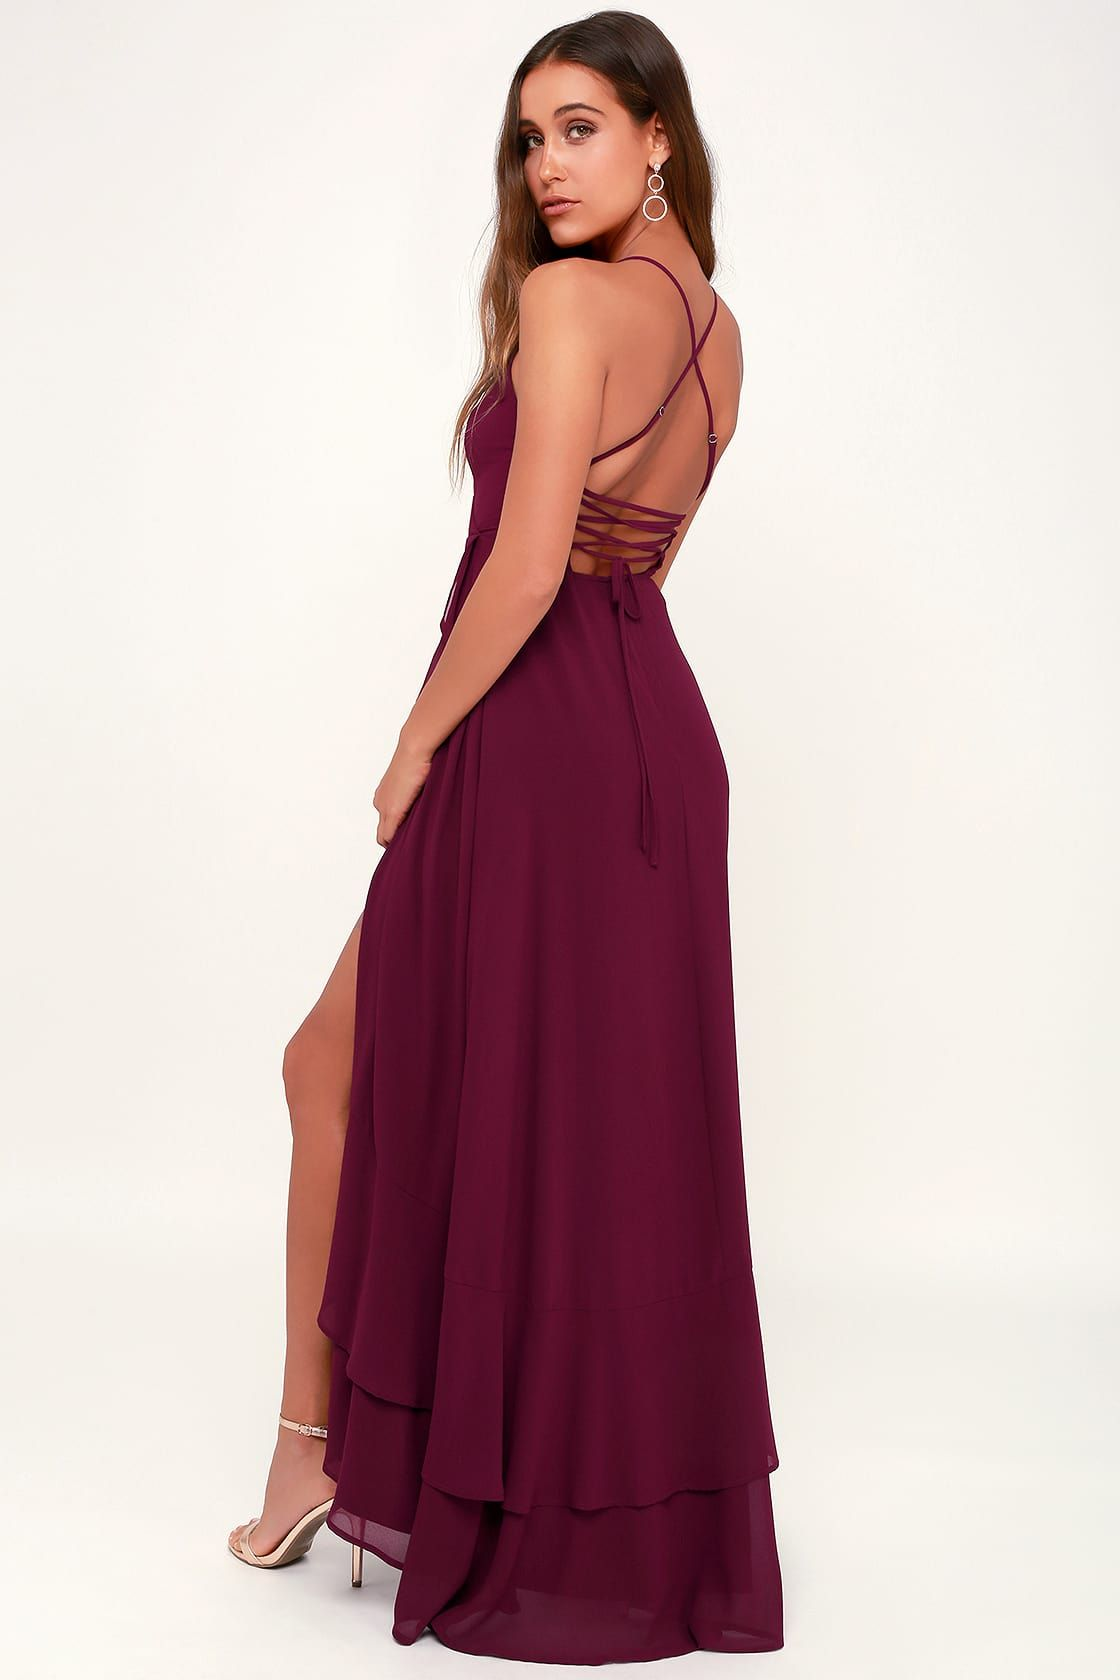 0239c5d472b In Love Forever Burgundy Lace-Up High-Low Maxi Dress